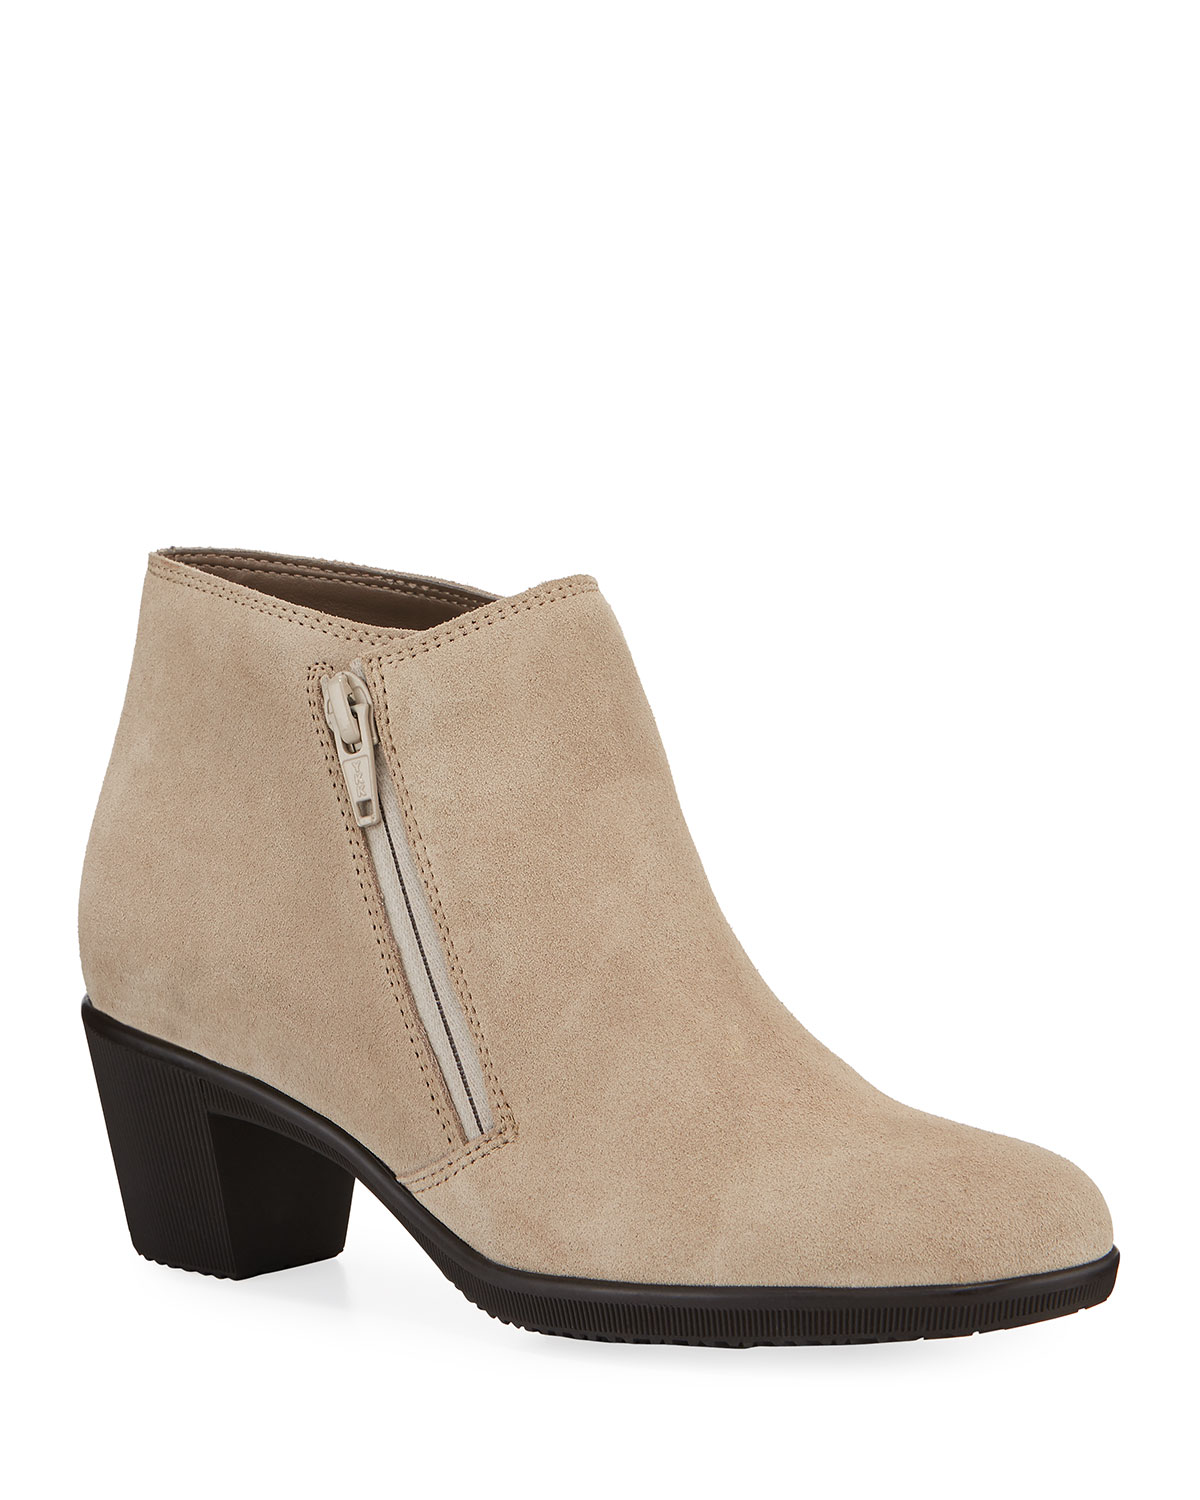 Pallas Water-Resistant Ankle Booties, Taupe